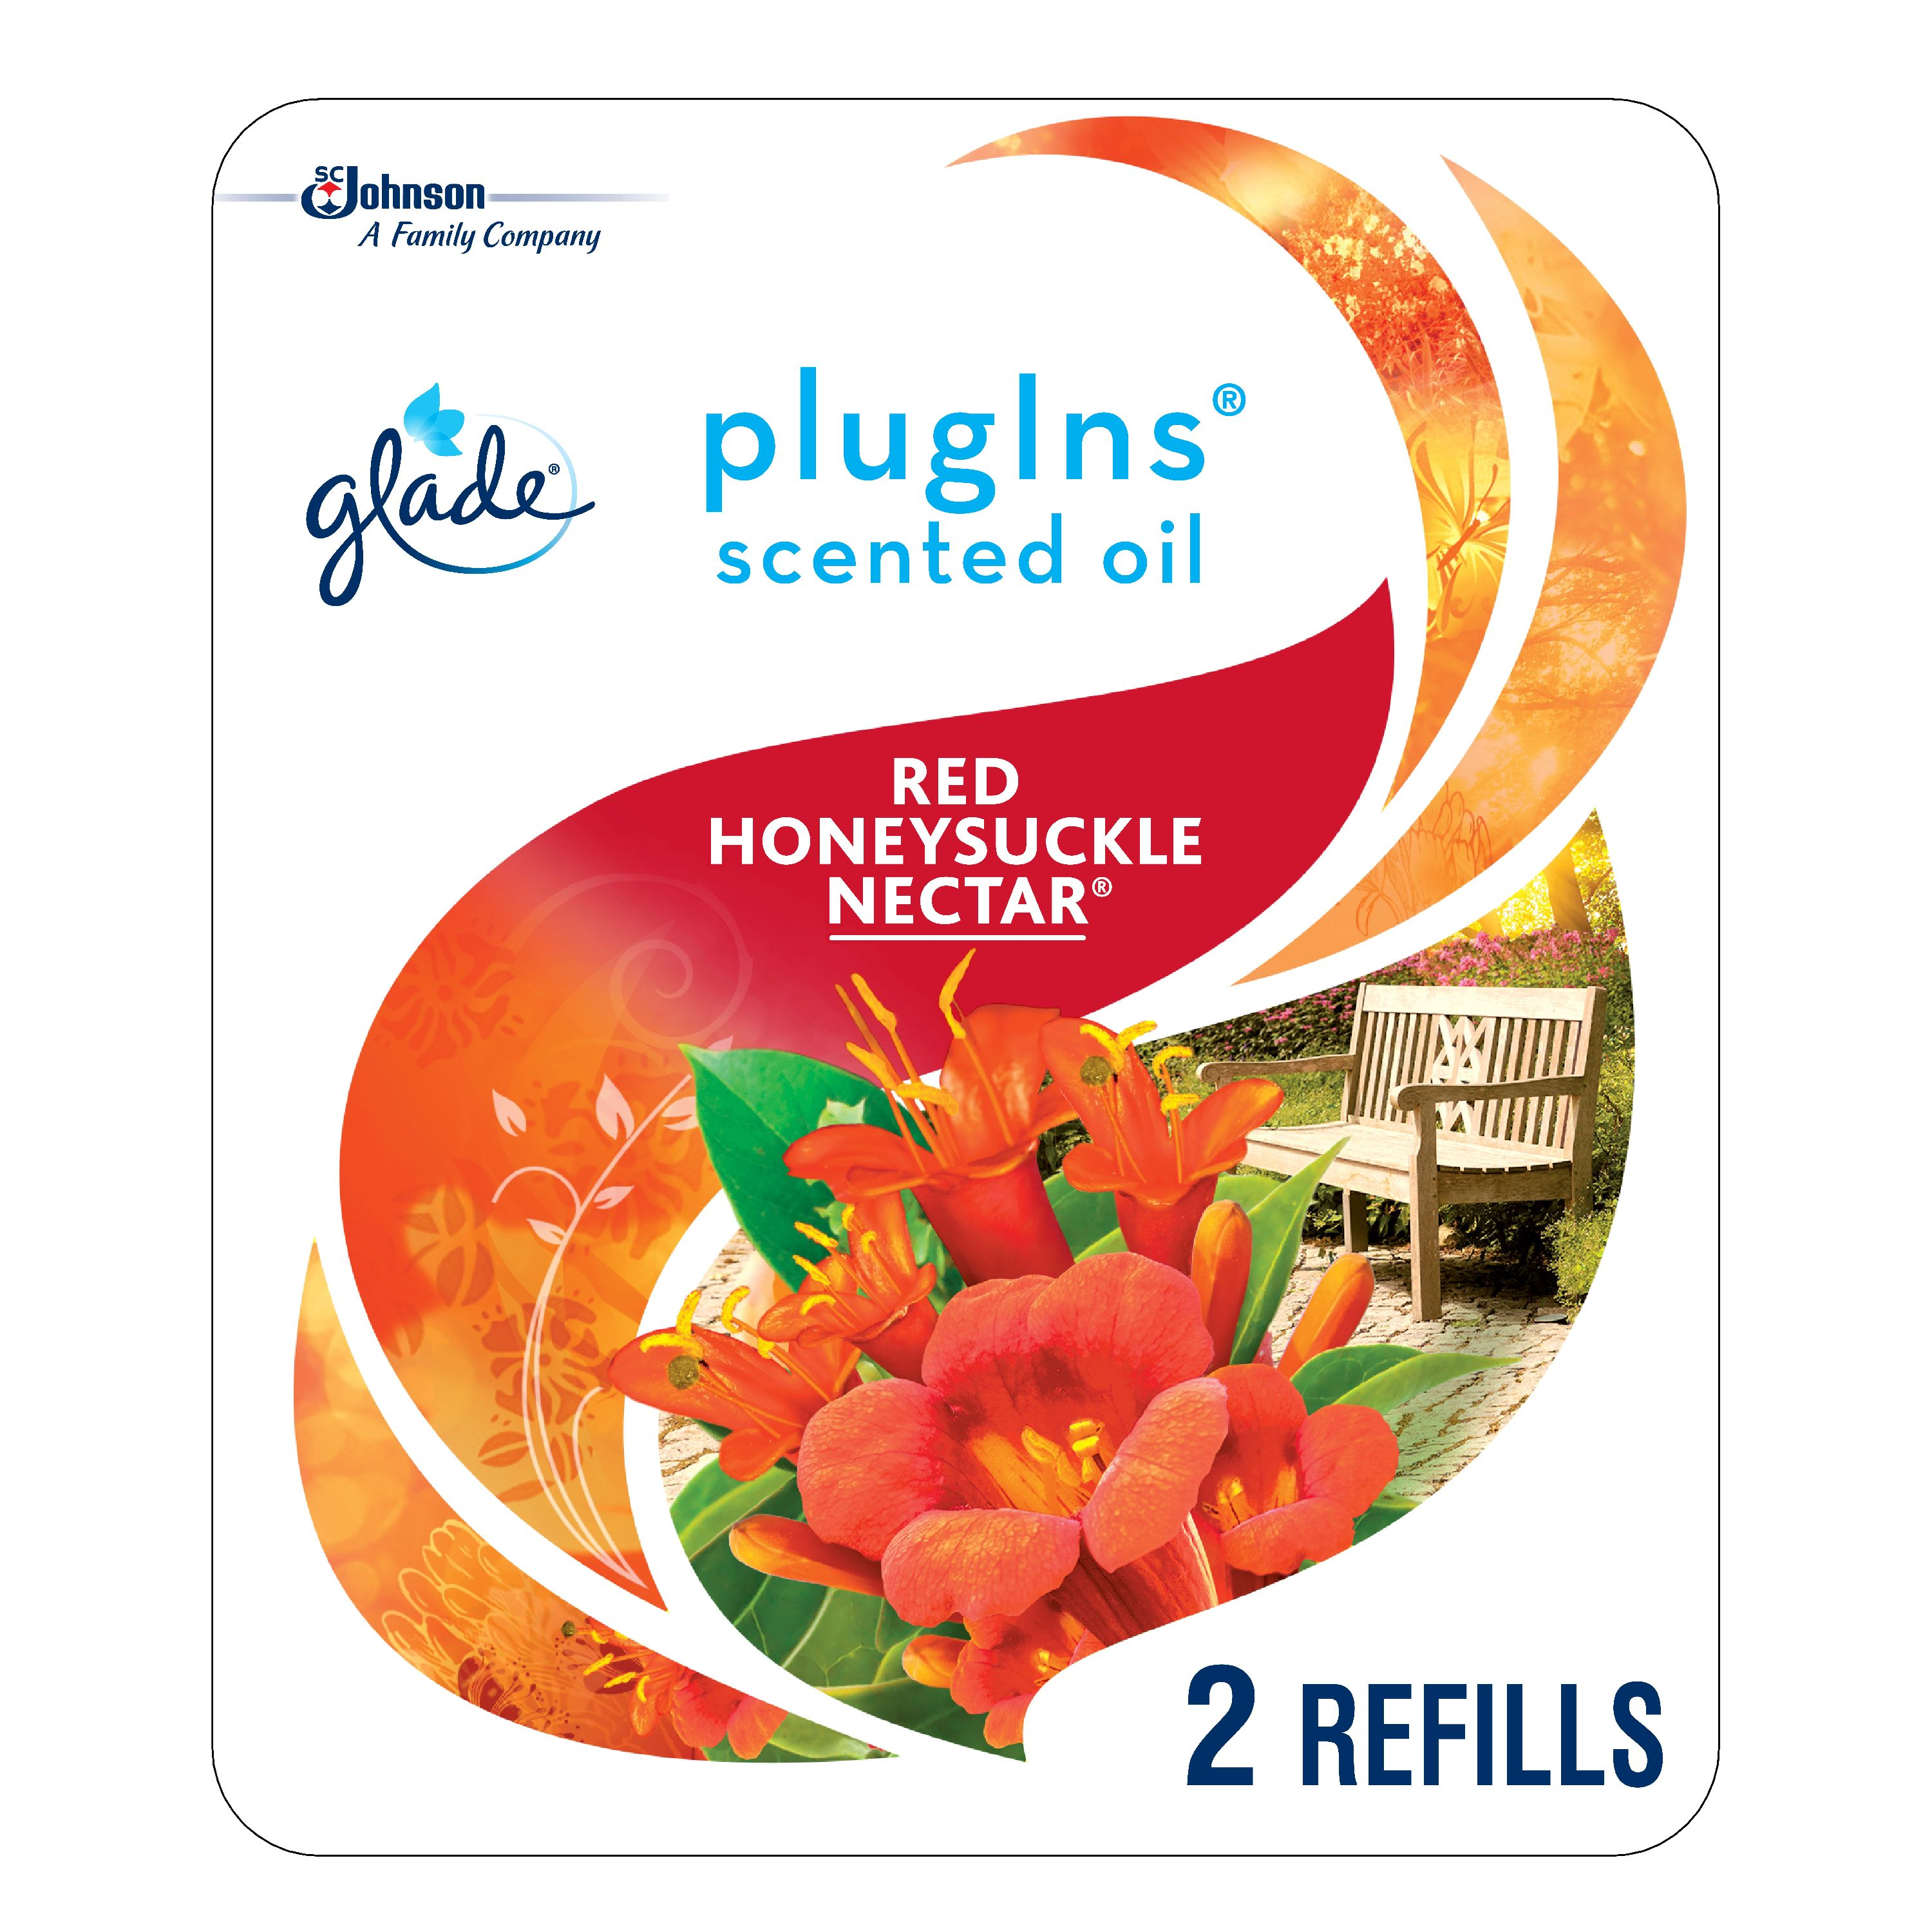 Glade PlugIns Scented Oil Refill Red Honeysuckle Nectar, Essential Oil Infused Wall Plug In, Up to 50 Days of Continuous Fragrance, 1.34 oz, Pack of 2